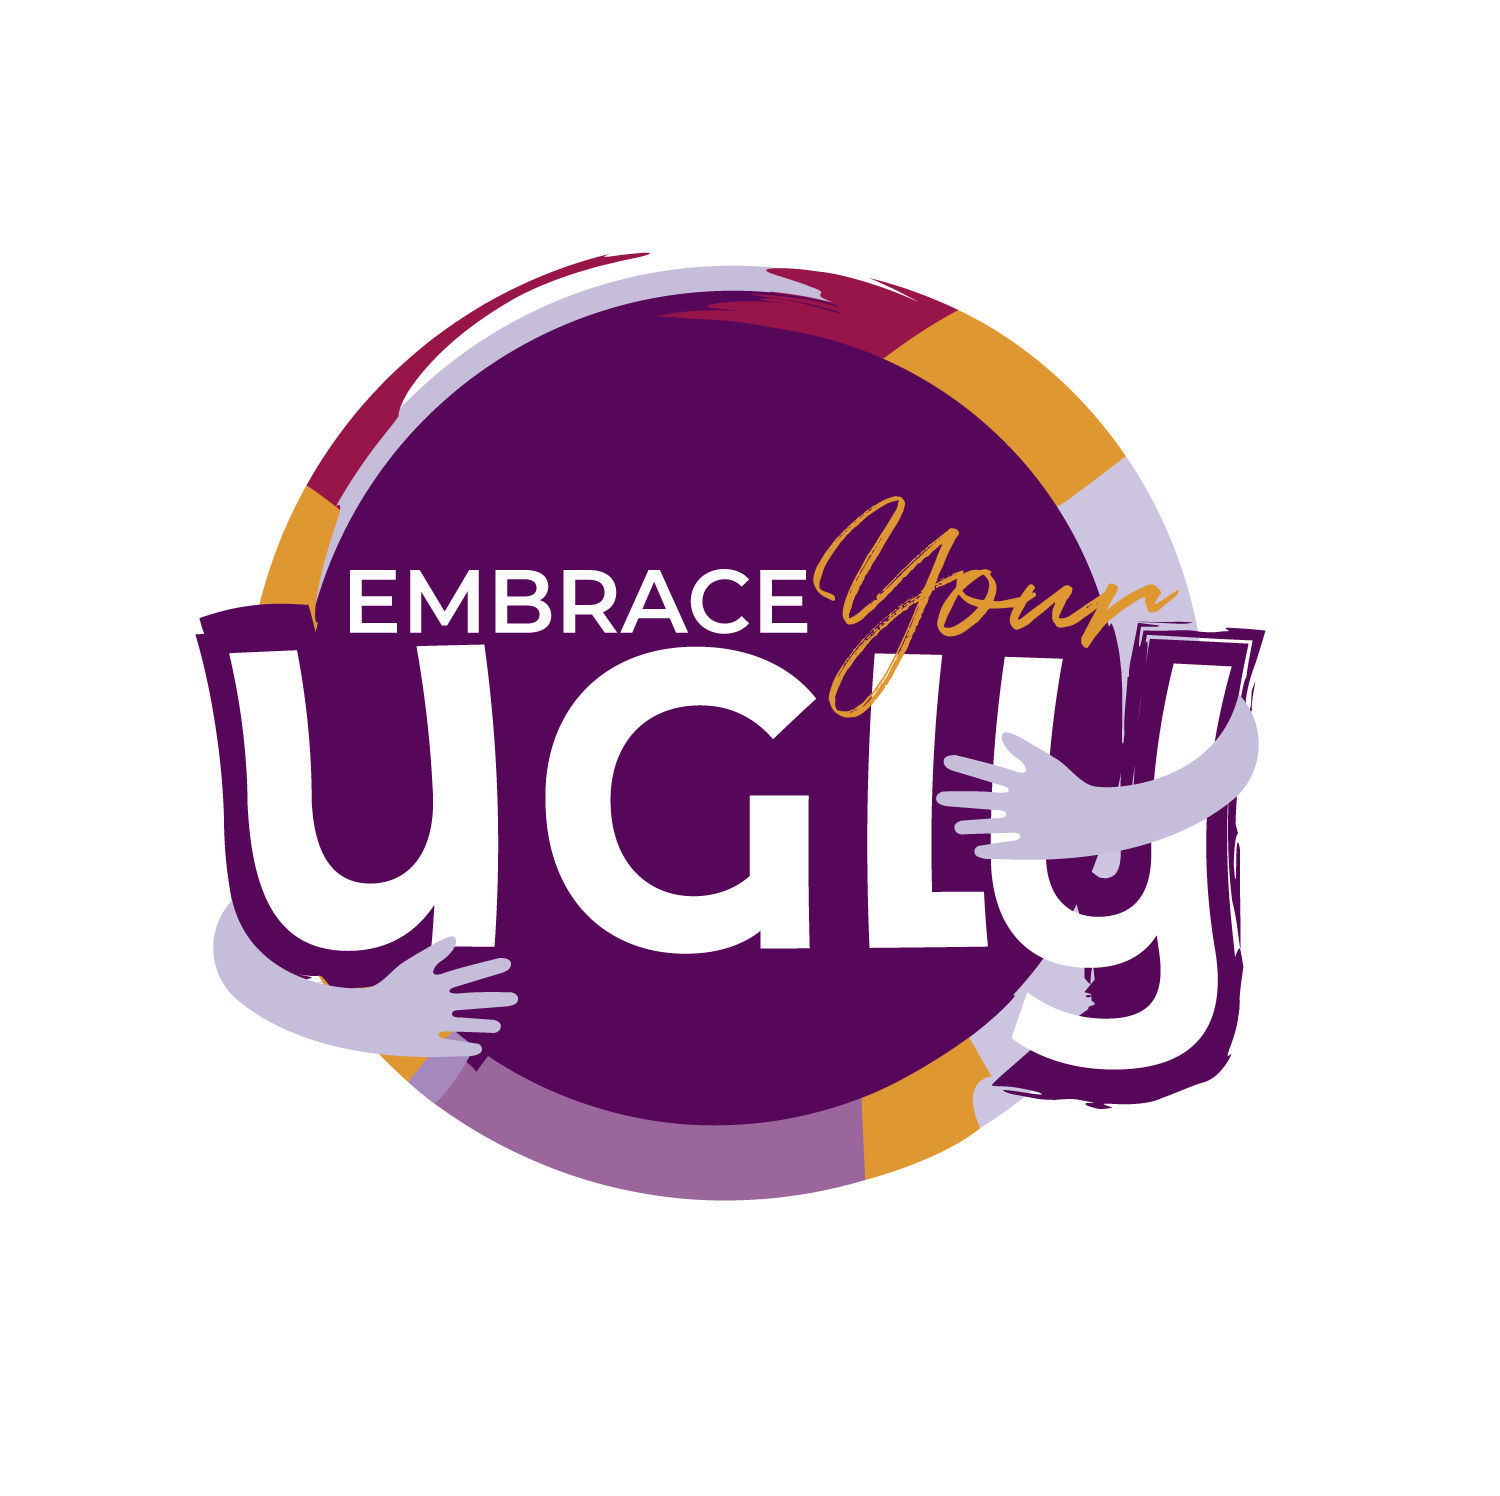 Embrace your ugly